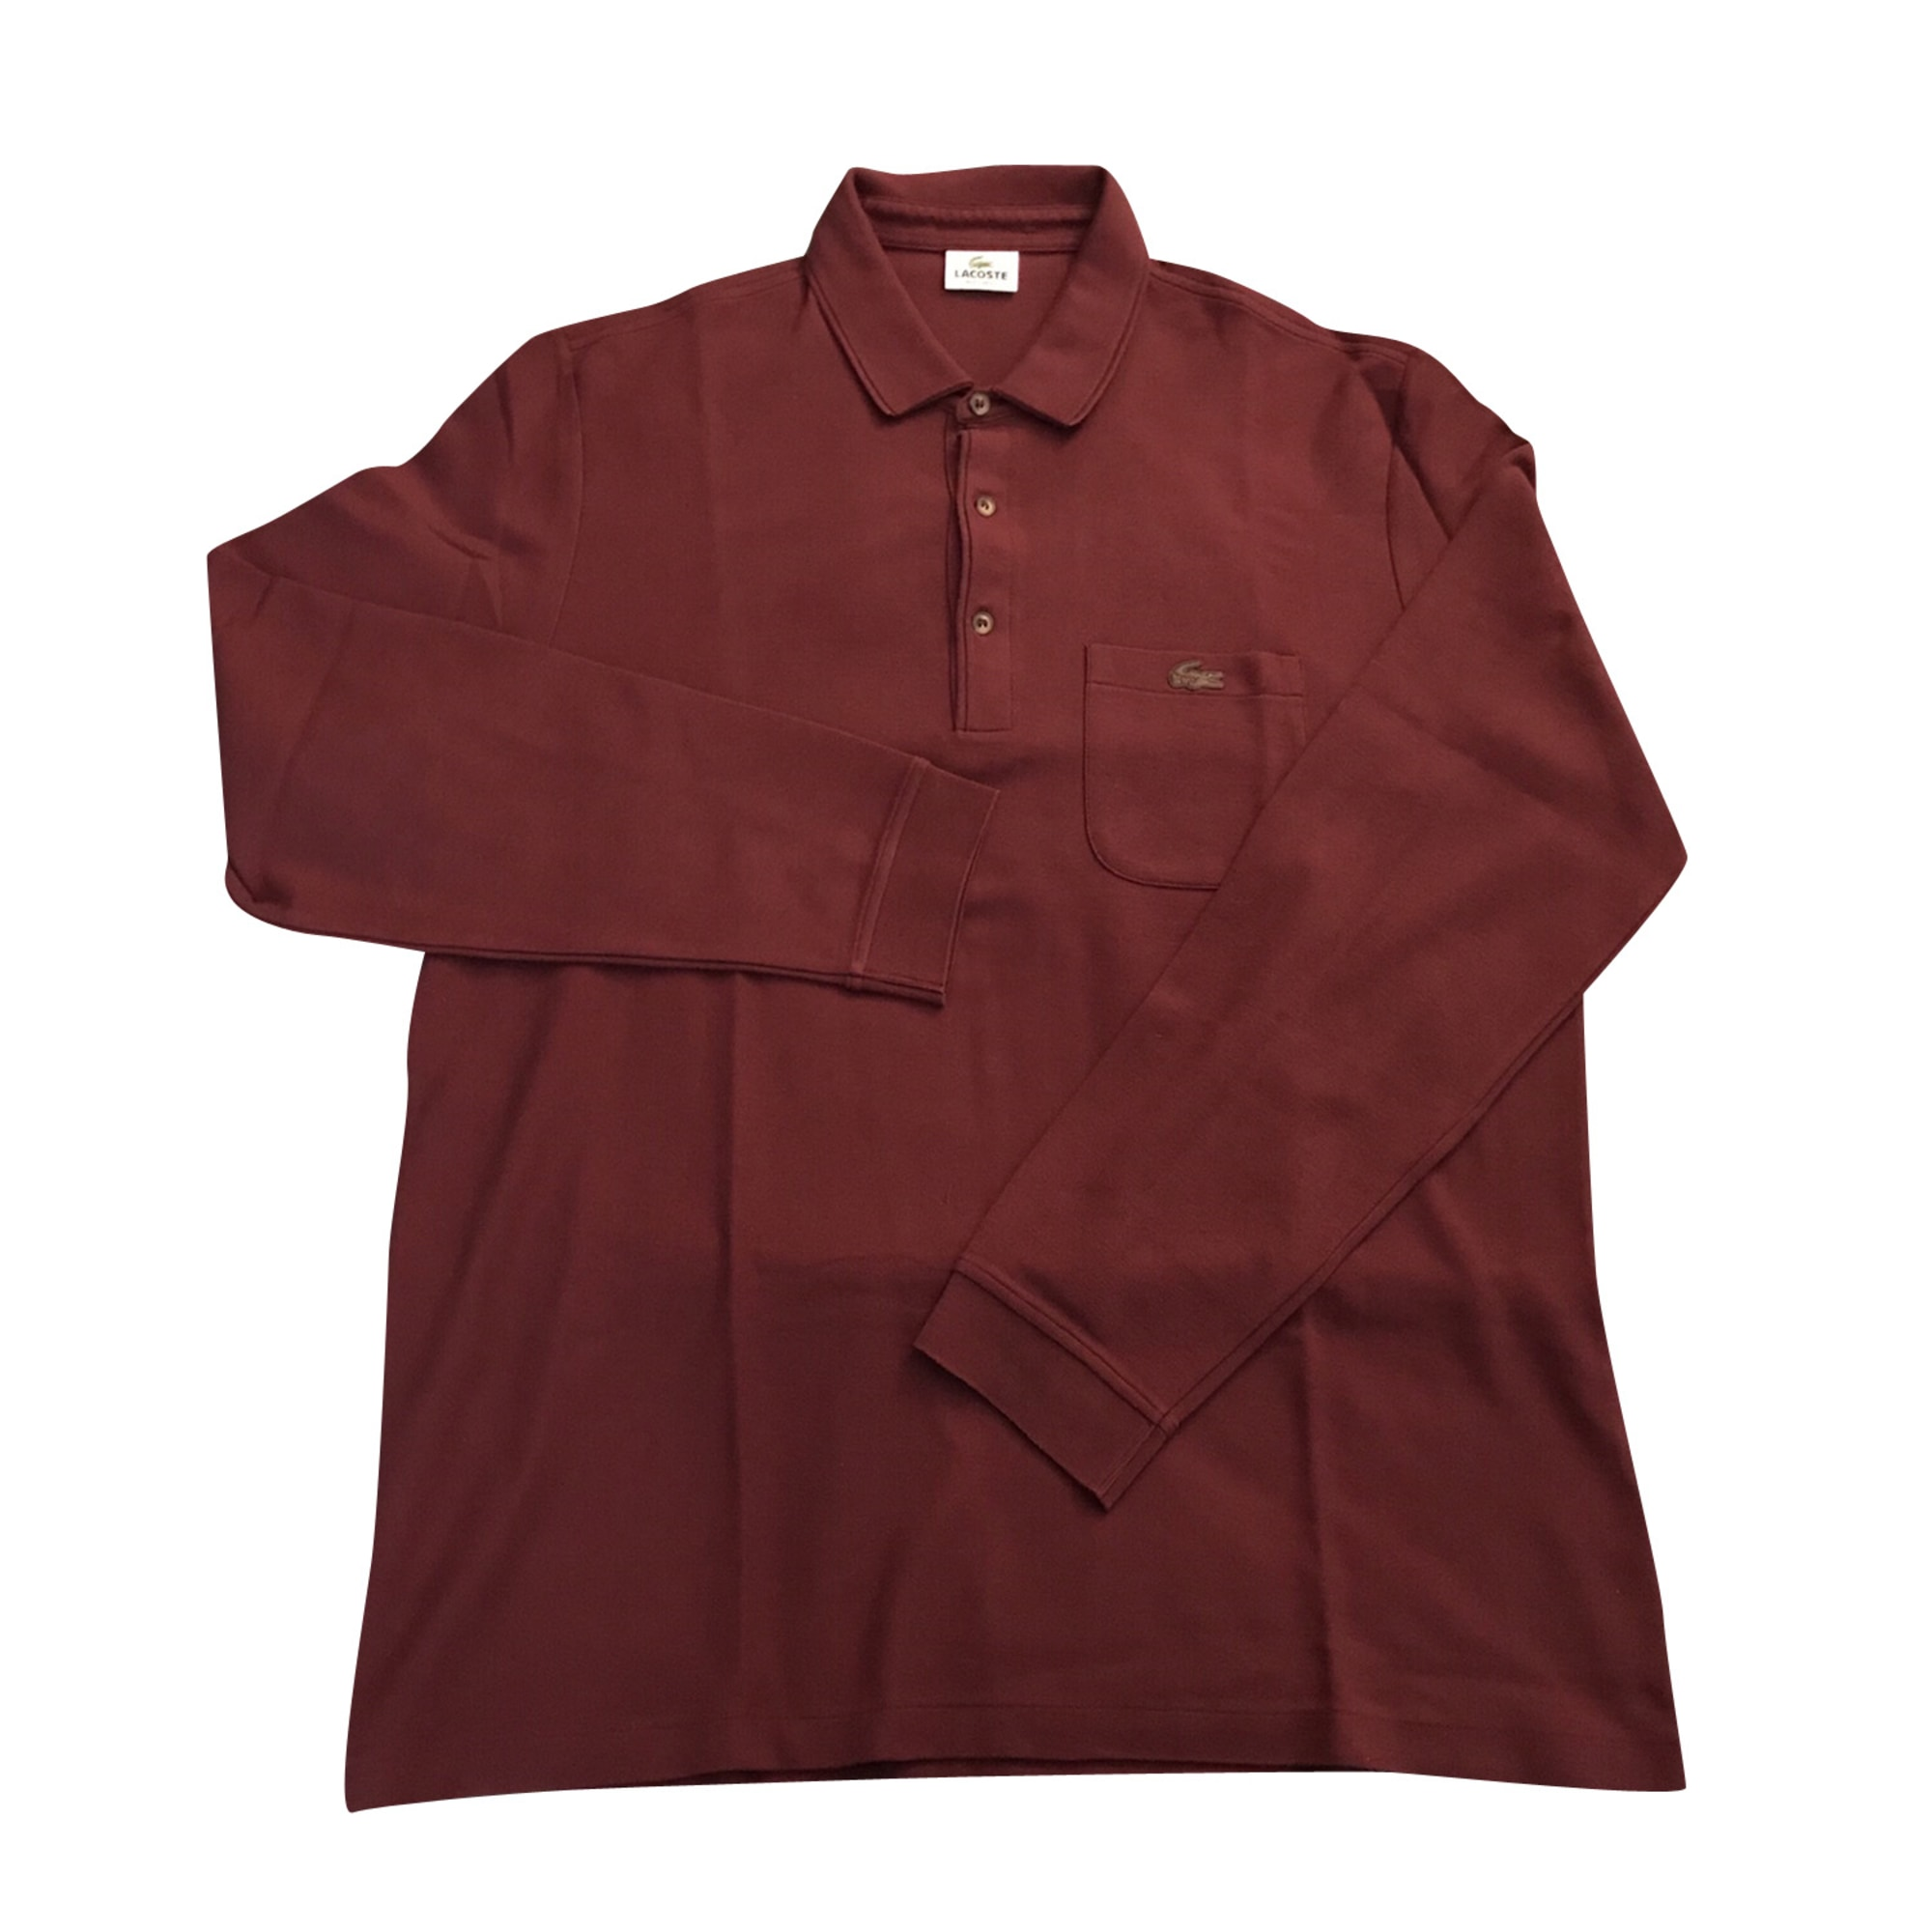 bfd063547f7 Polo LACOSTE 7 (XXXXL) rouge - 8245870